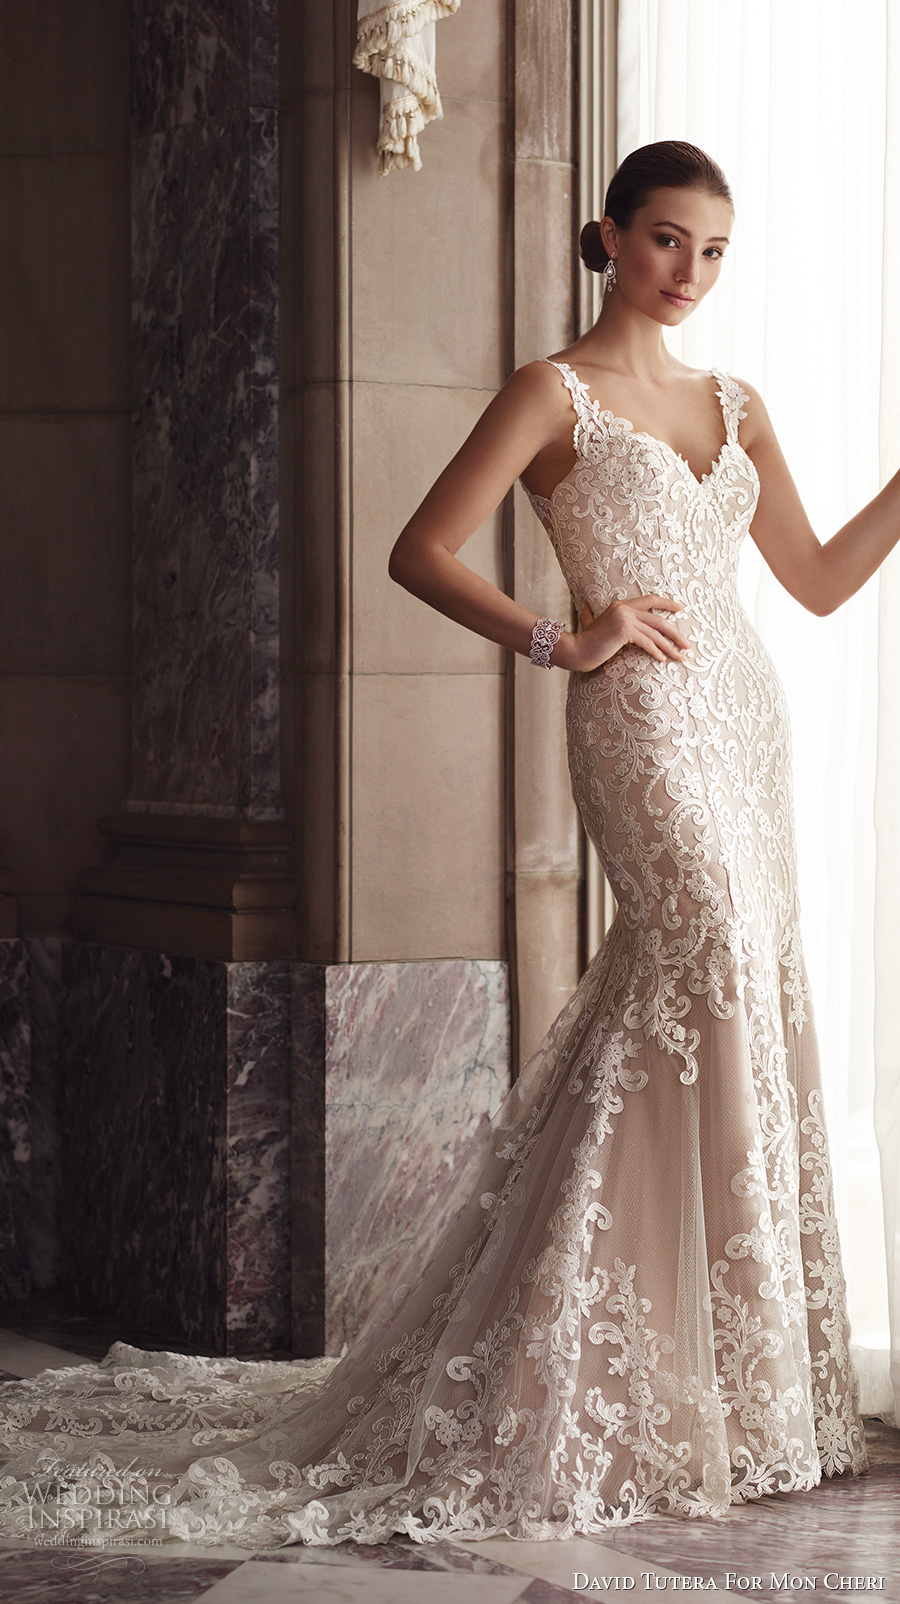 31 Inspirational Ideas Of Elegant Wedding Dresses The Best Wedding